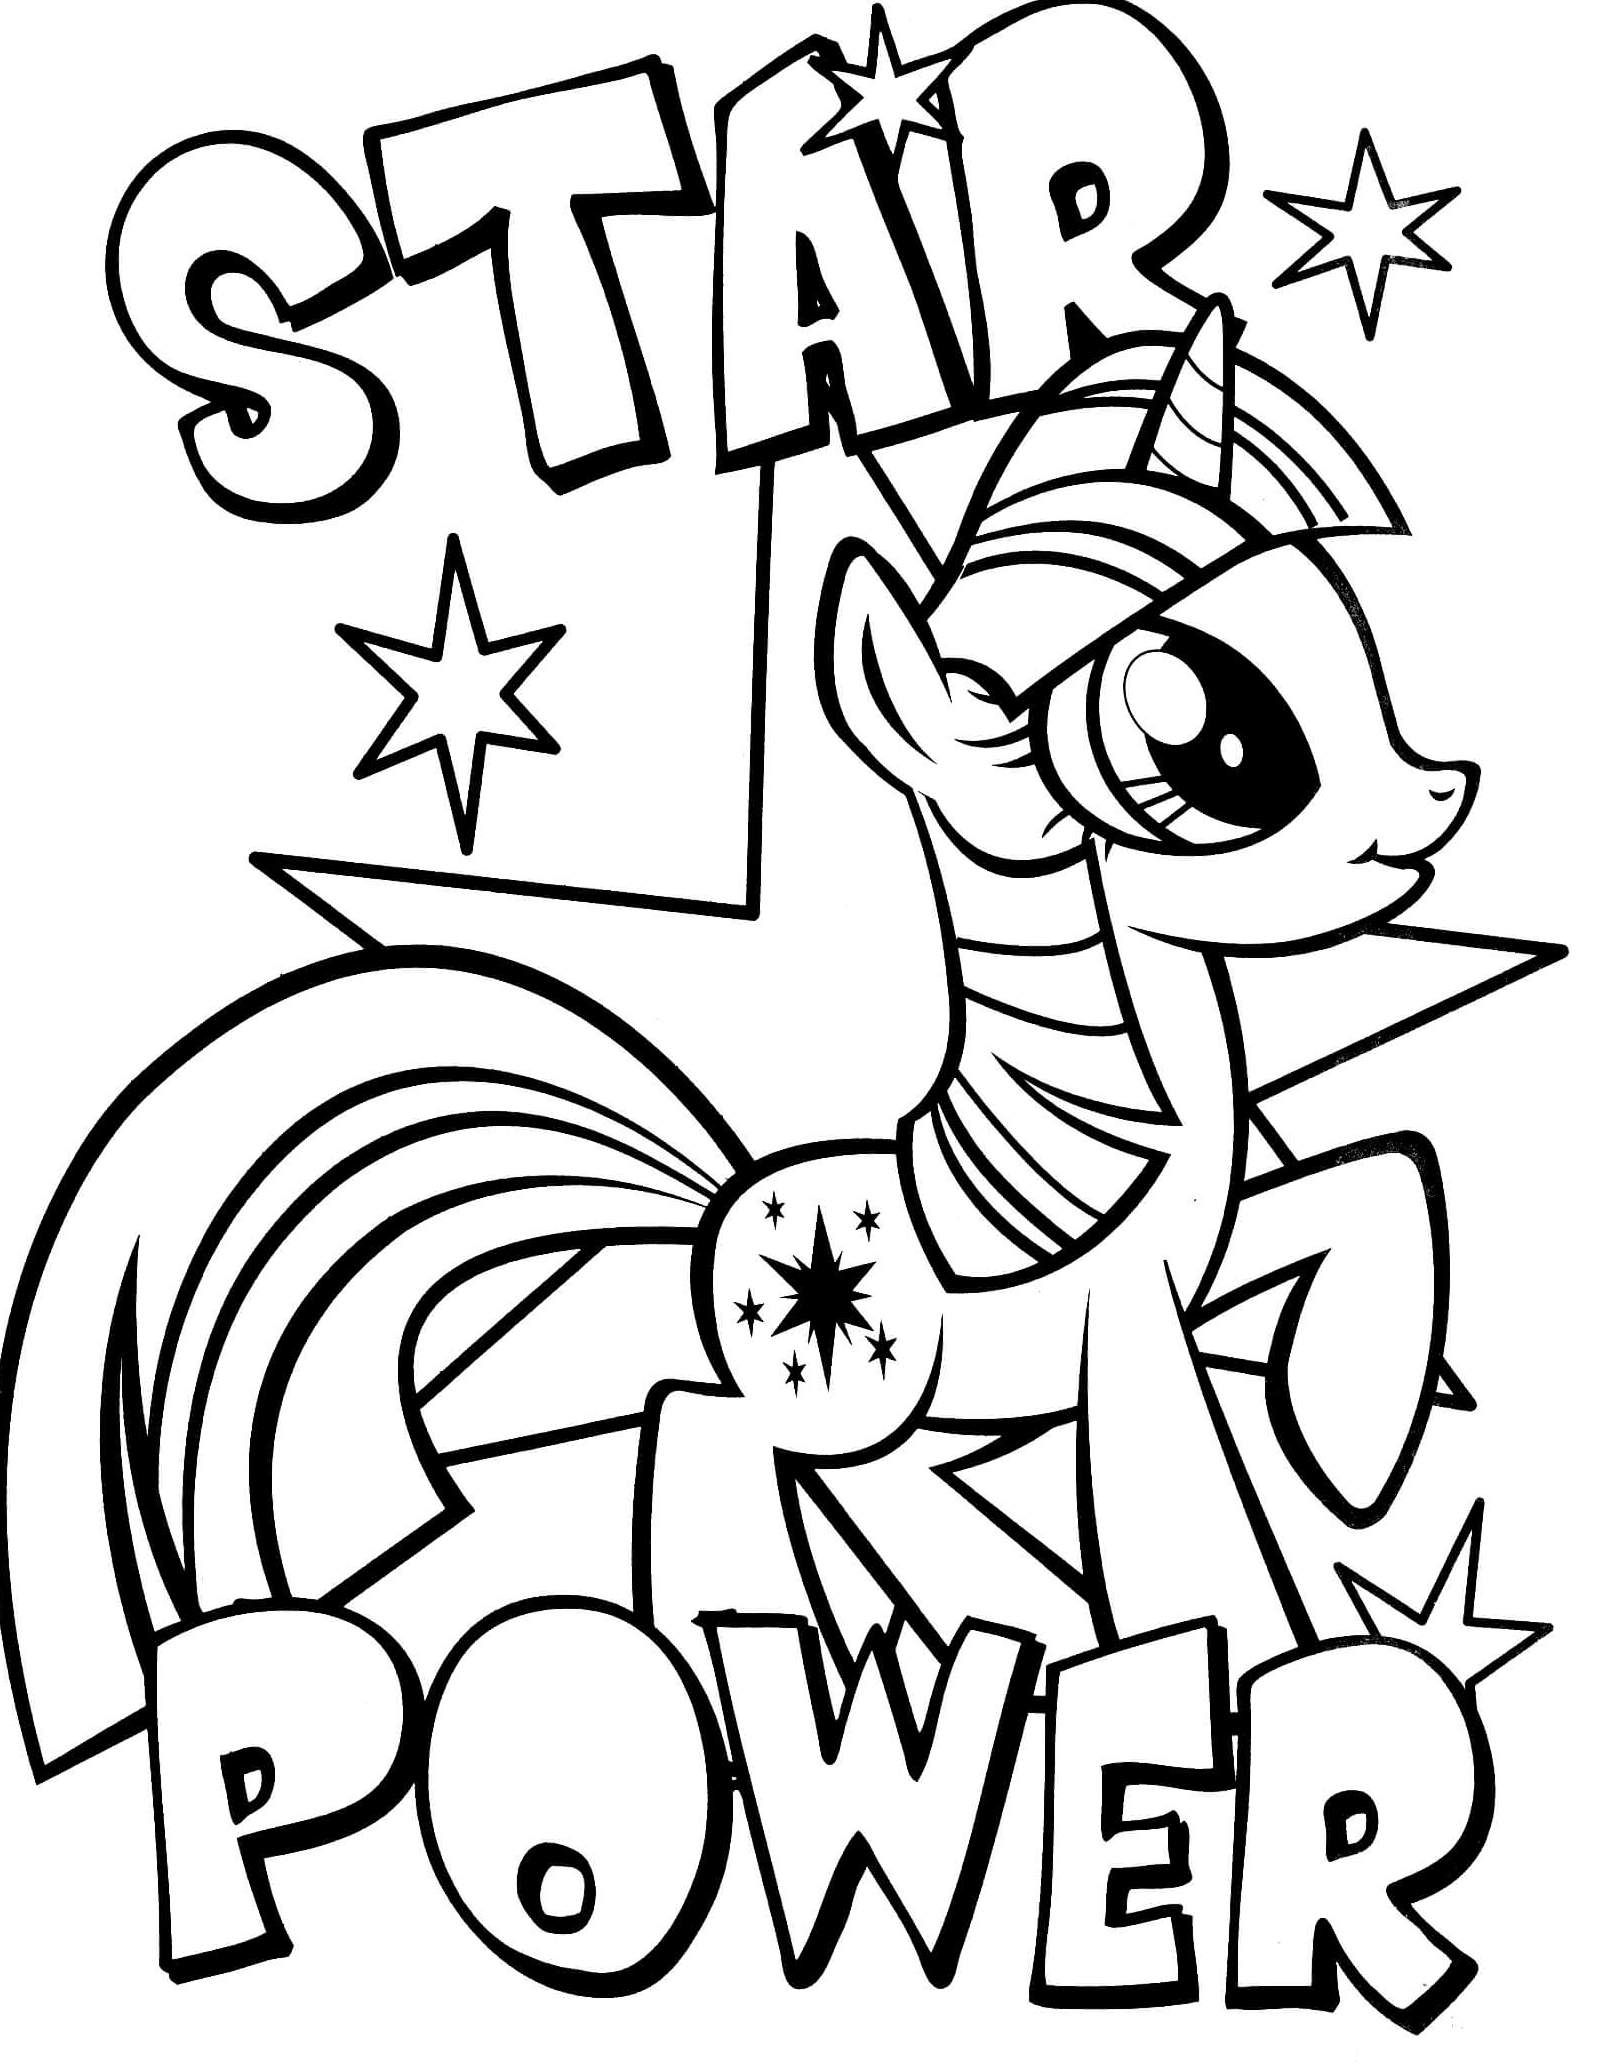 My Little Pony Images To Print My Little Pony Pictures To Color My Little Pony Images Unicorn Coloring Pages My Little Pony Printable My Little Pony Coloring